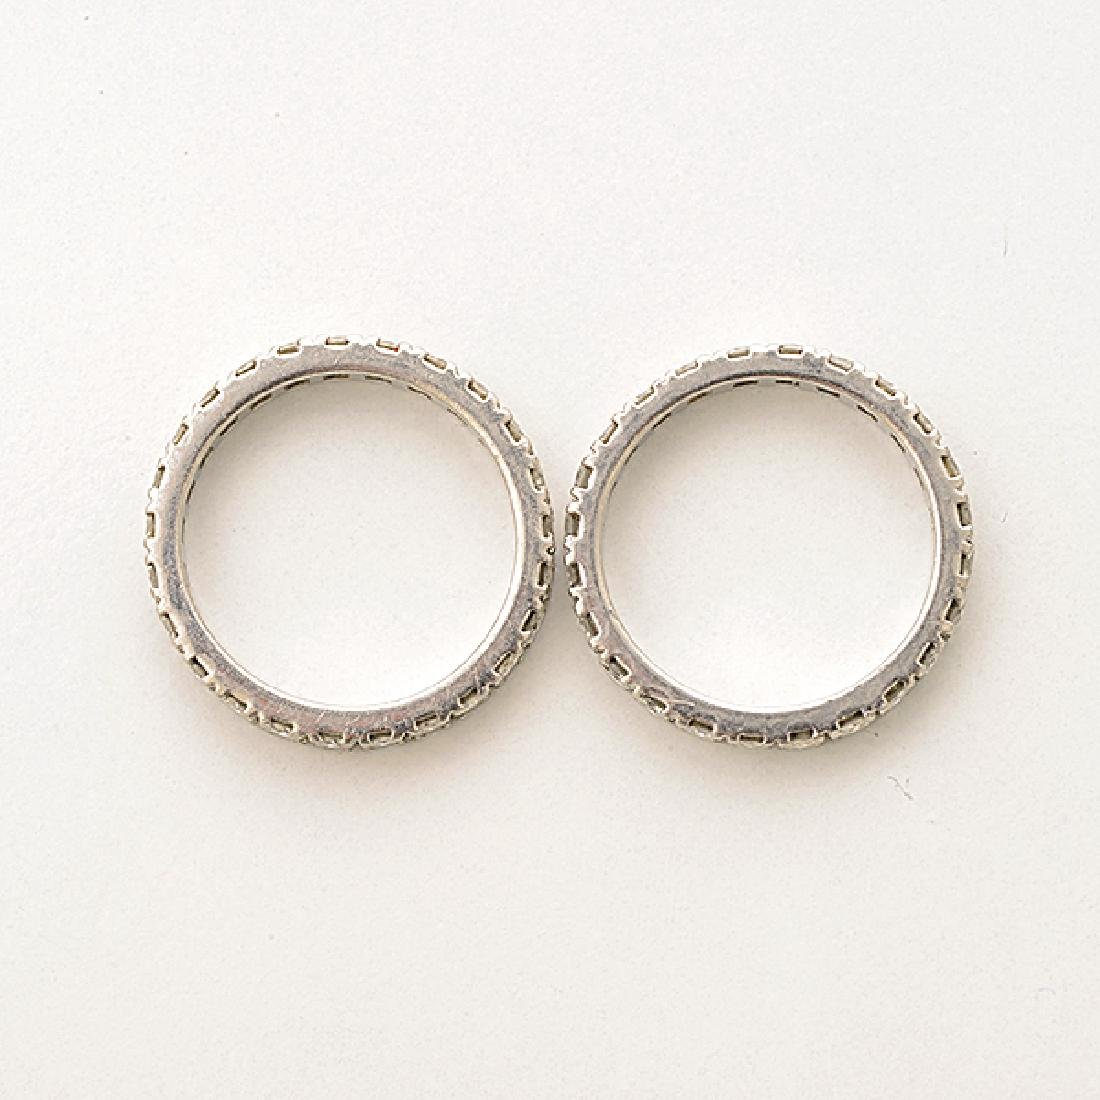 Collection of Two Matching Diamond, Platinum Eternity - 3